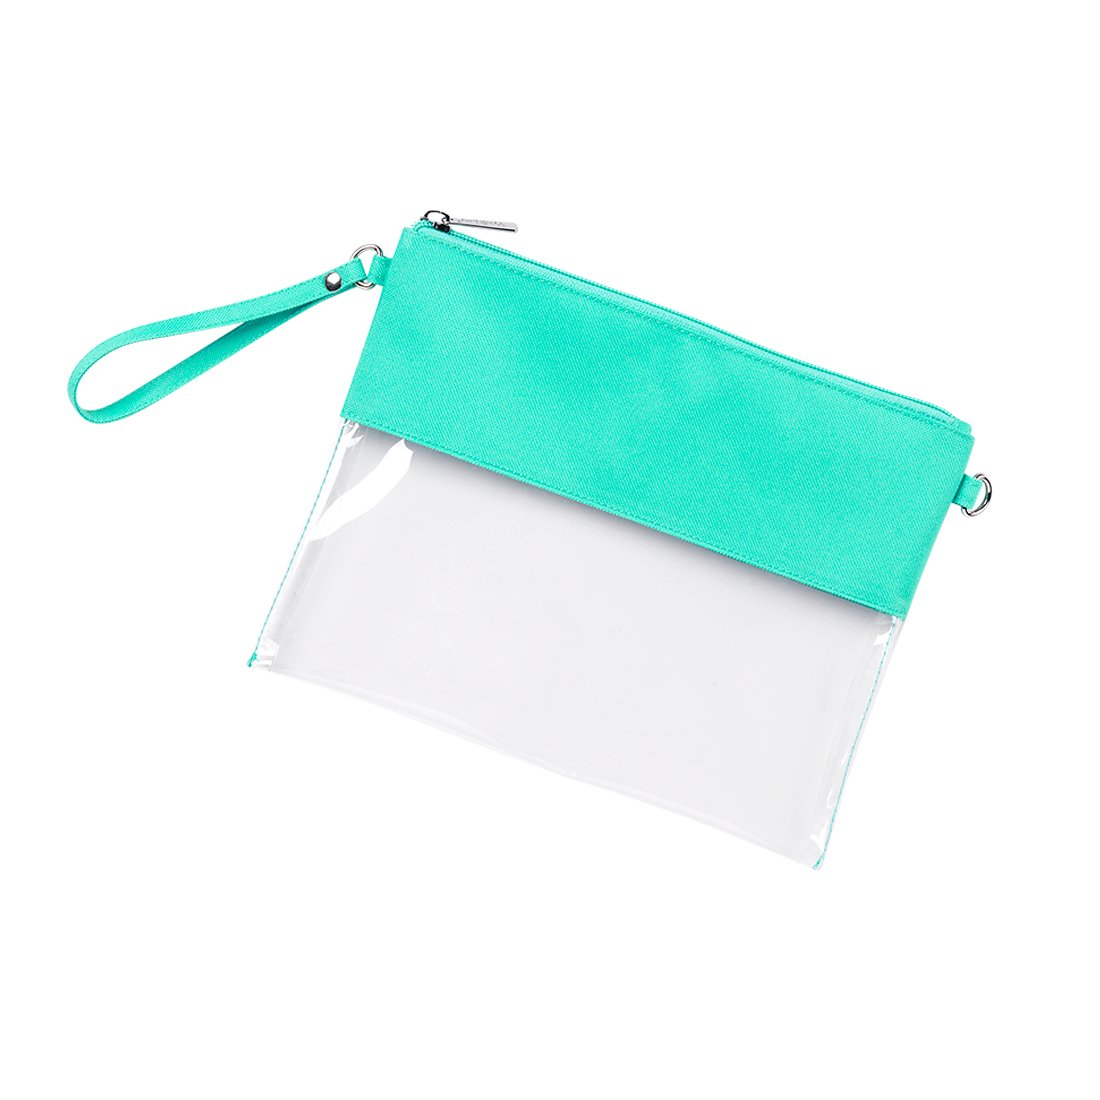 Custom Stadium Clear Zip Pouch with Detachable Crossbody Strap and Wristlet (Personalized Mint)